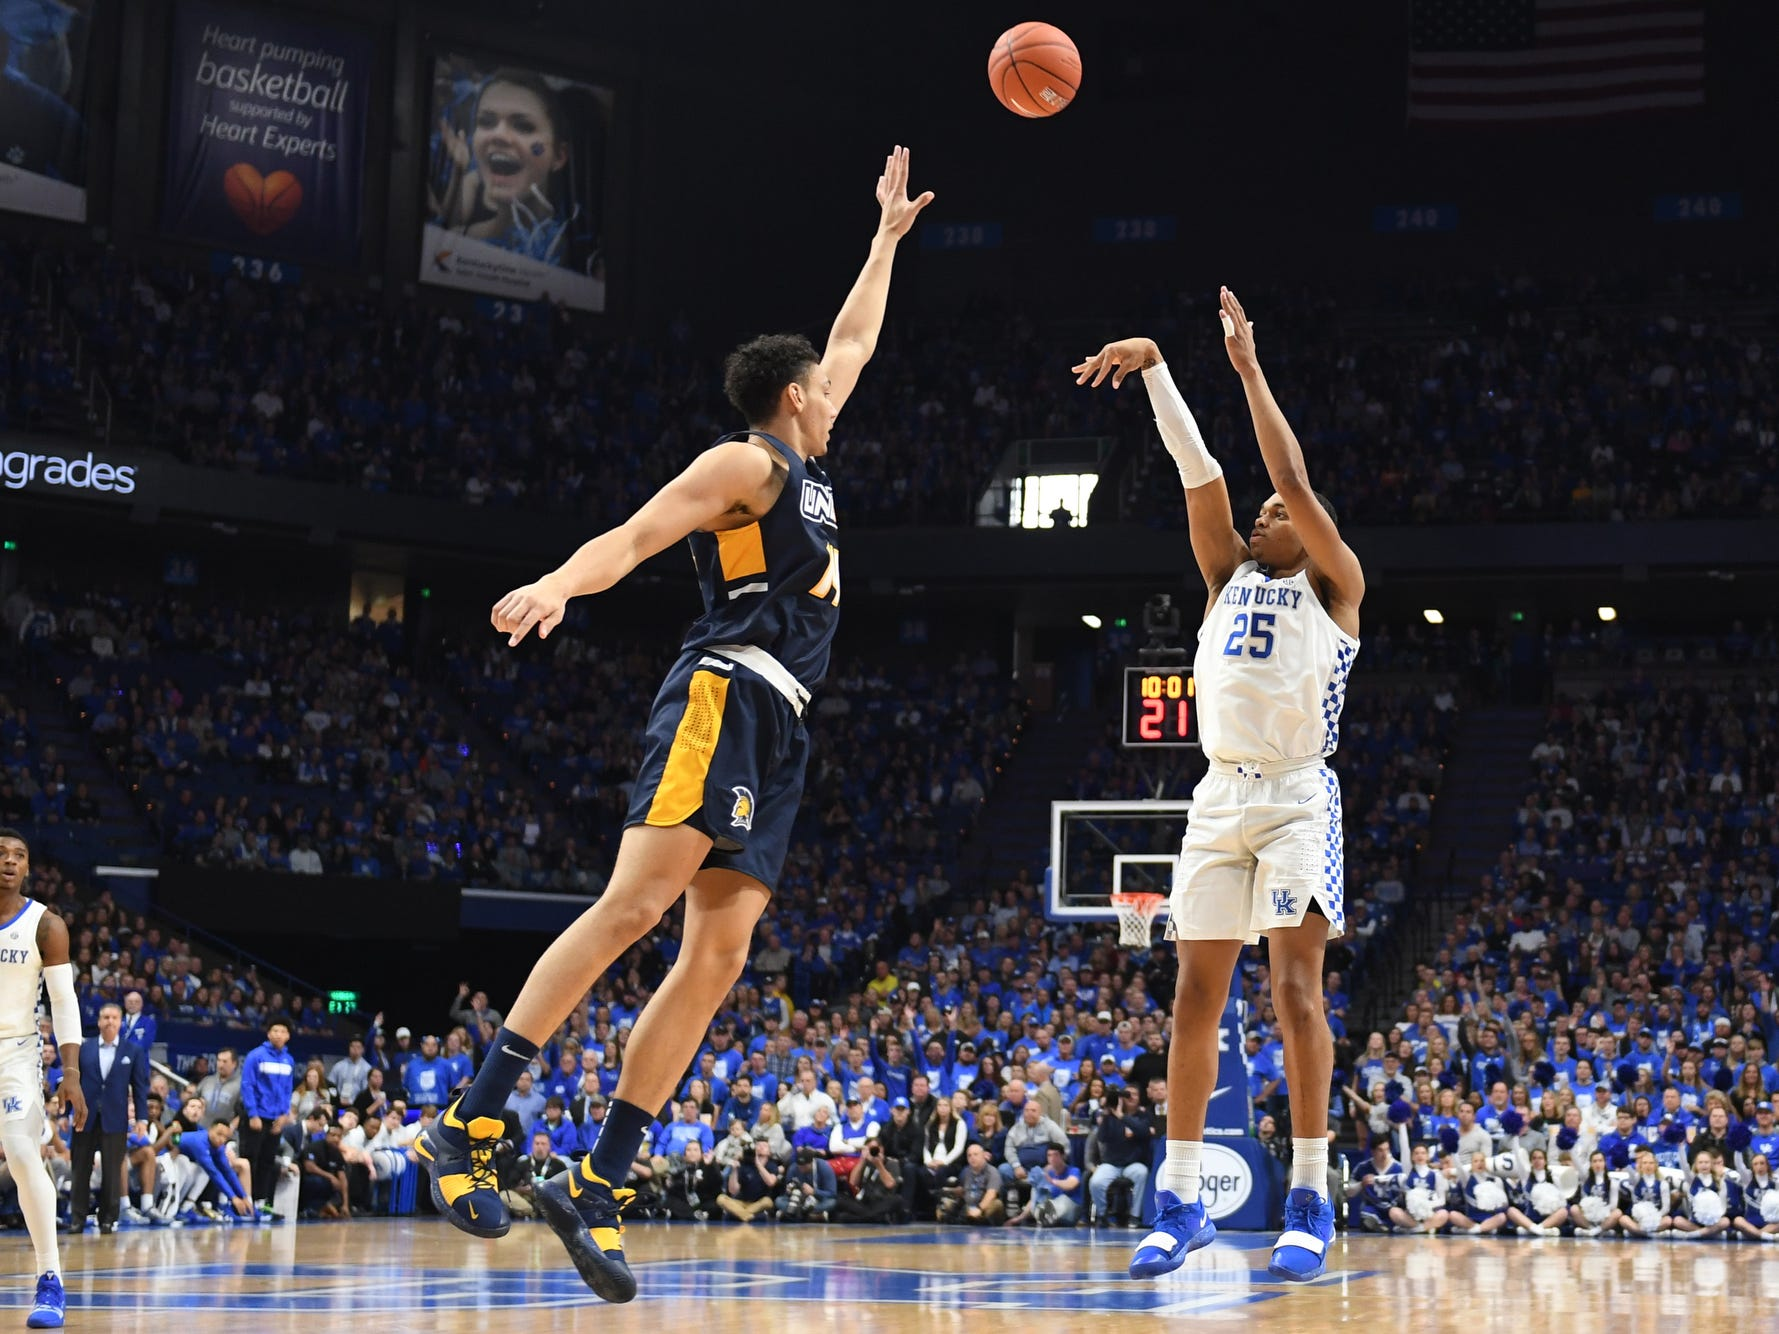 UK F PJ Washington shoots the ball during the University of Kentucky men's basketball game against UNC Greensboro at Rupp Arena in Lexington, Kentucky on Saturday, December 1, 2018.